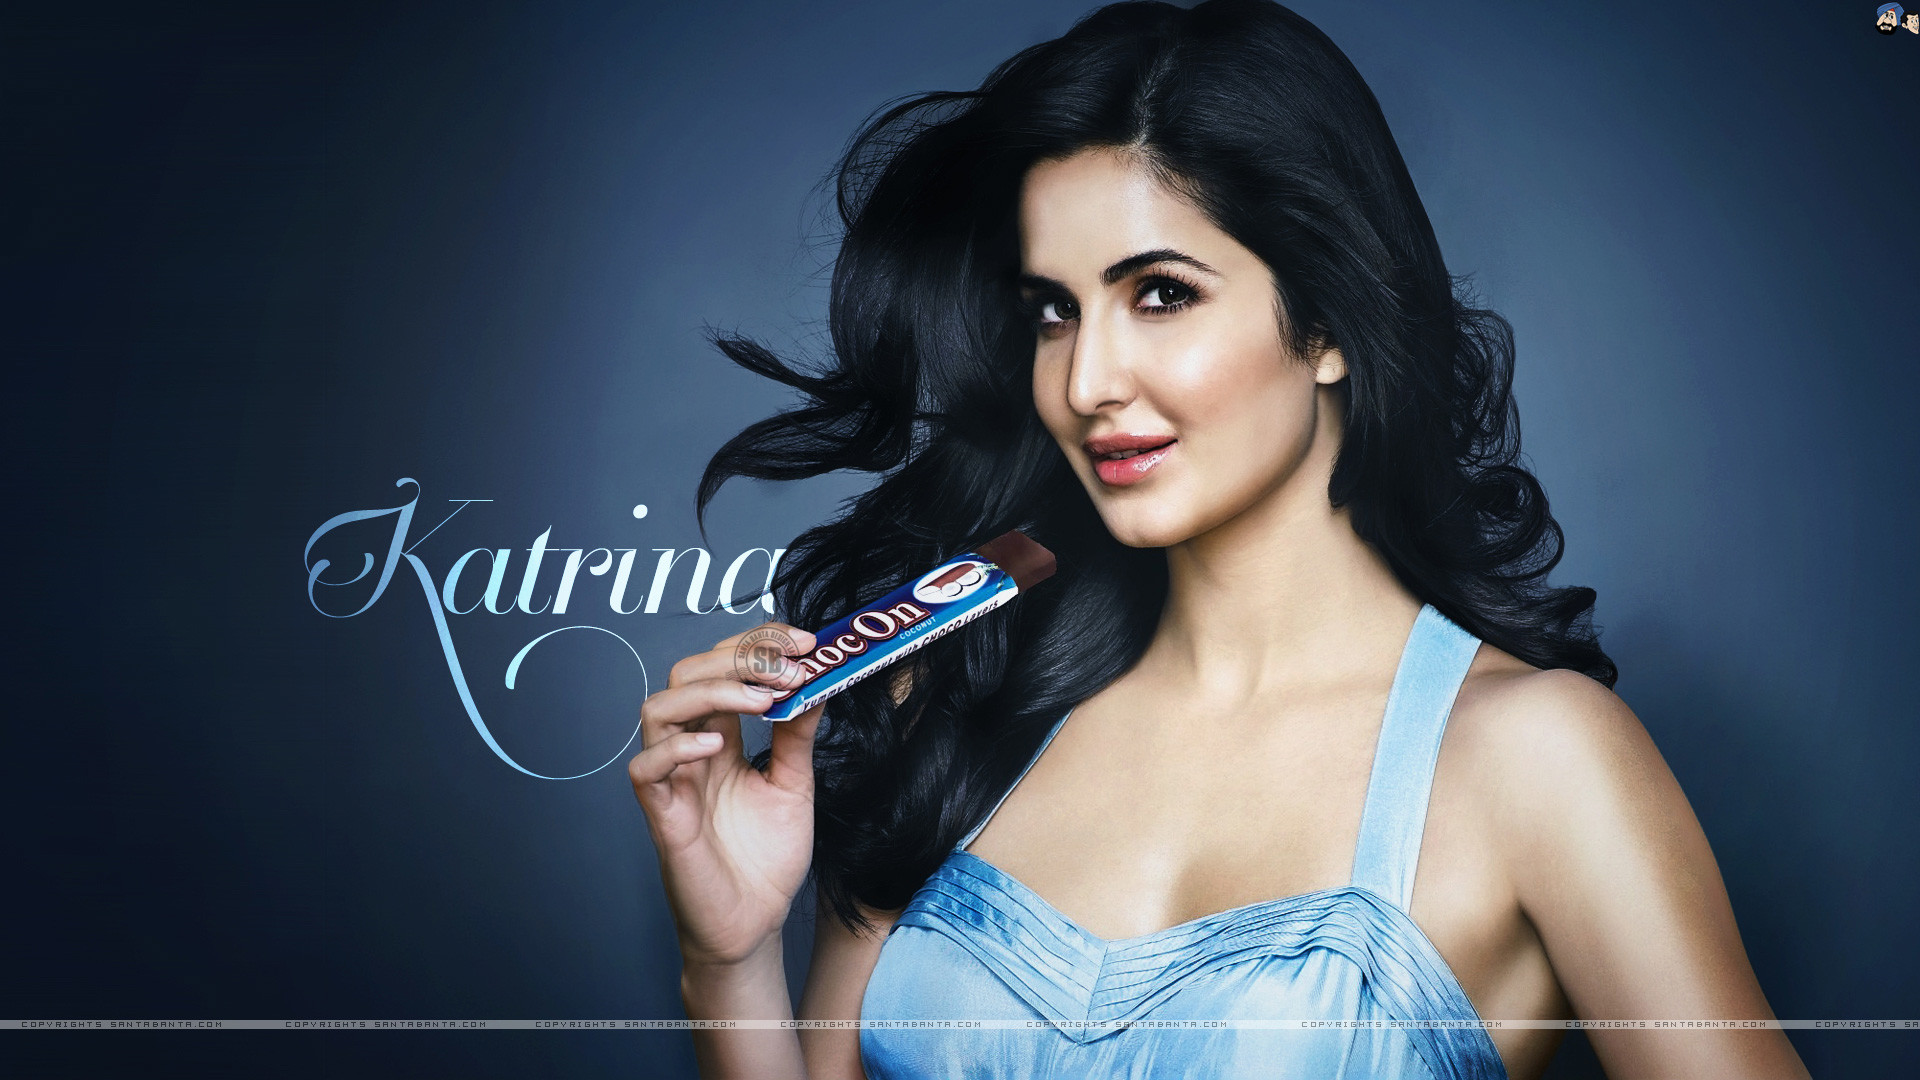 Katrina Kaif Wallpapers 2018 76 Background Pictures